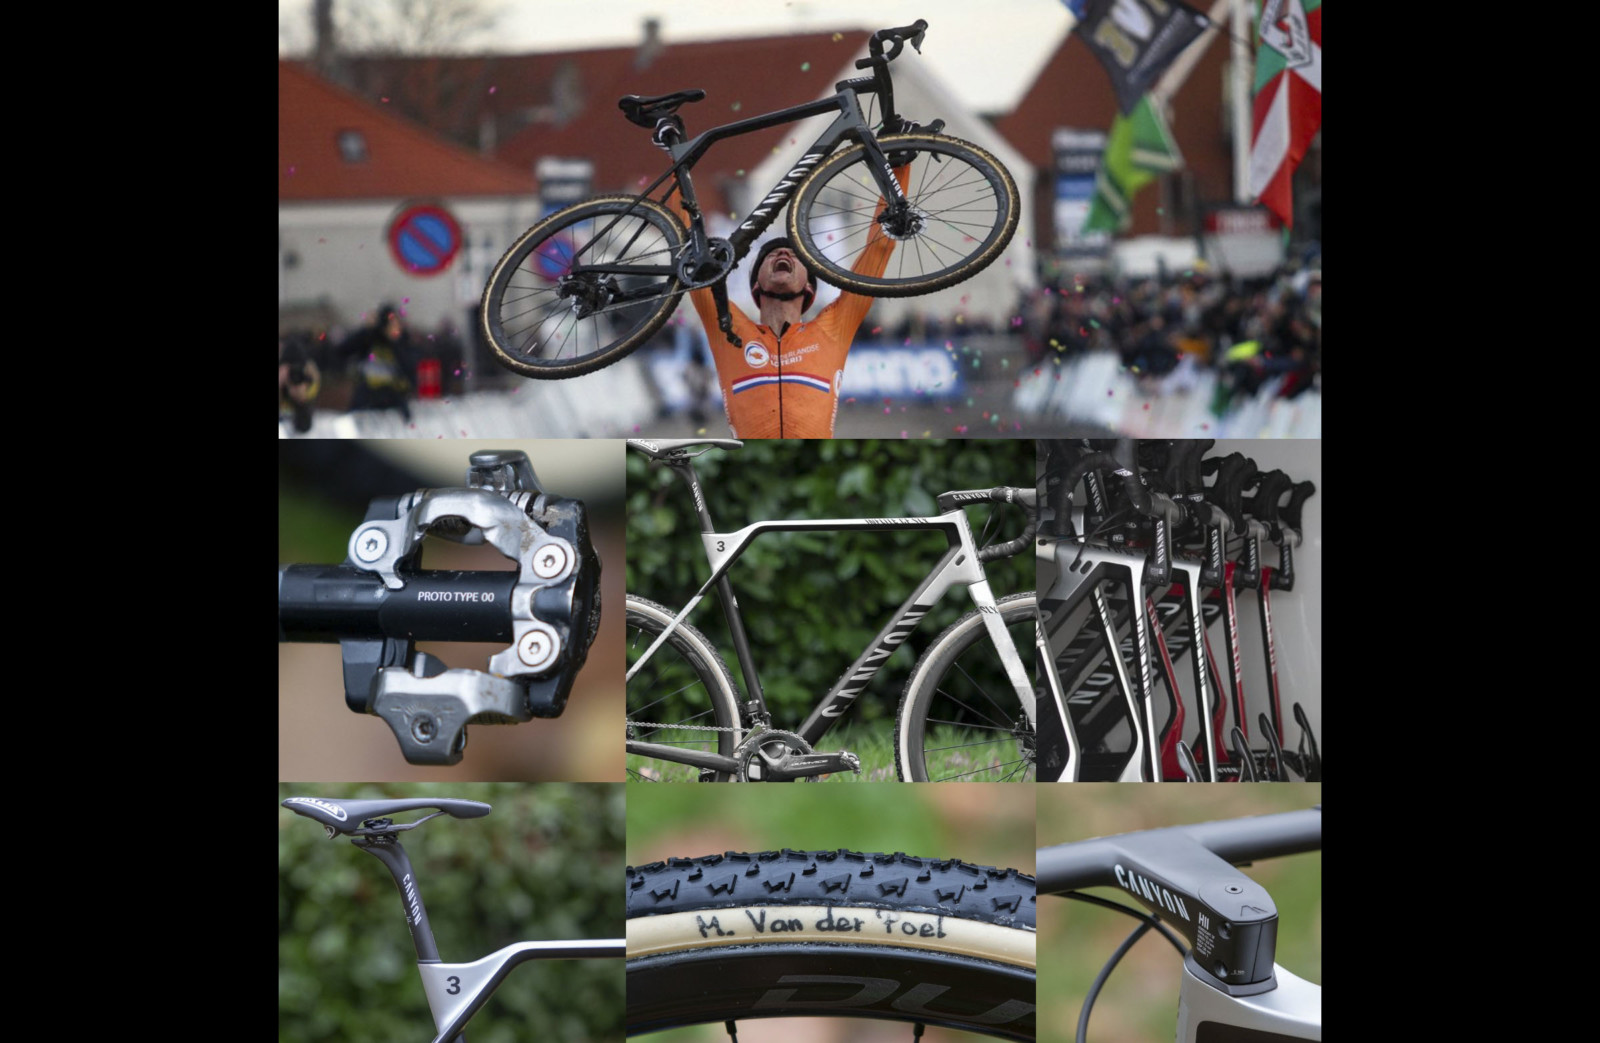 worlds bike mathieu van der poel s